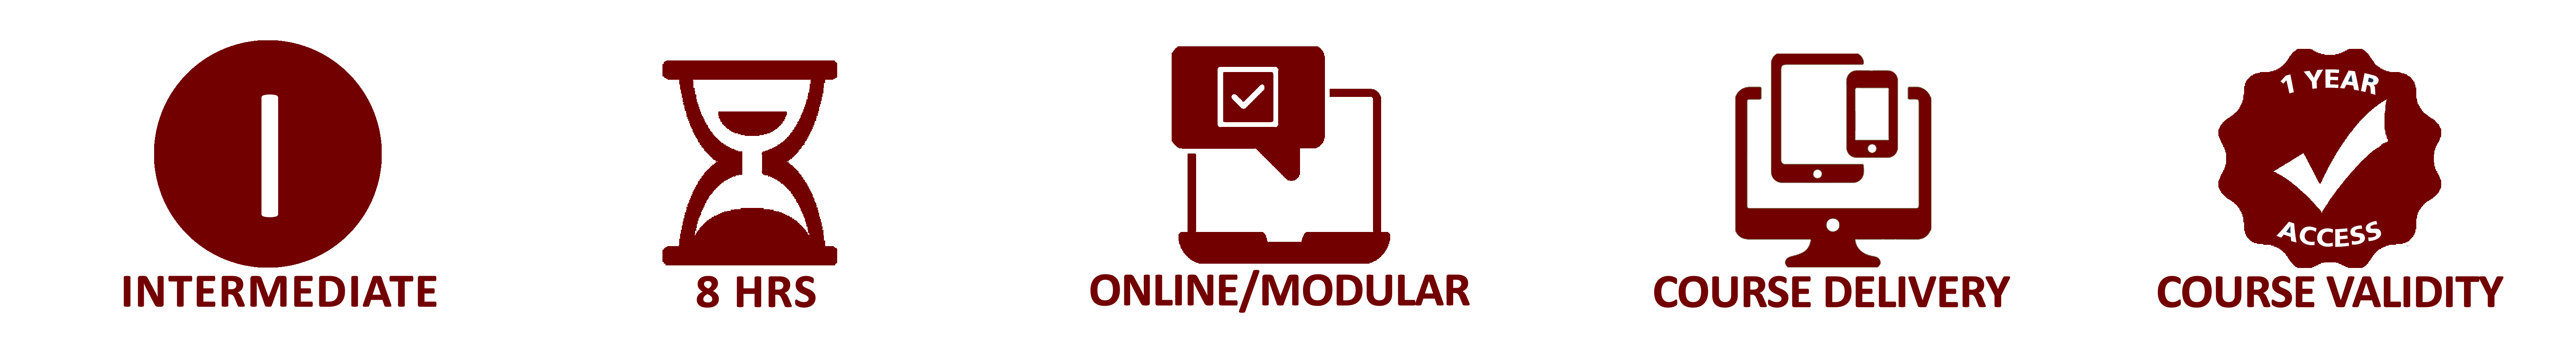 All In One-Day Mandatory Training – 15 Online Courses - E-Learning Courses - Mandatory Compliance UK -